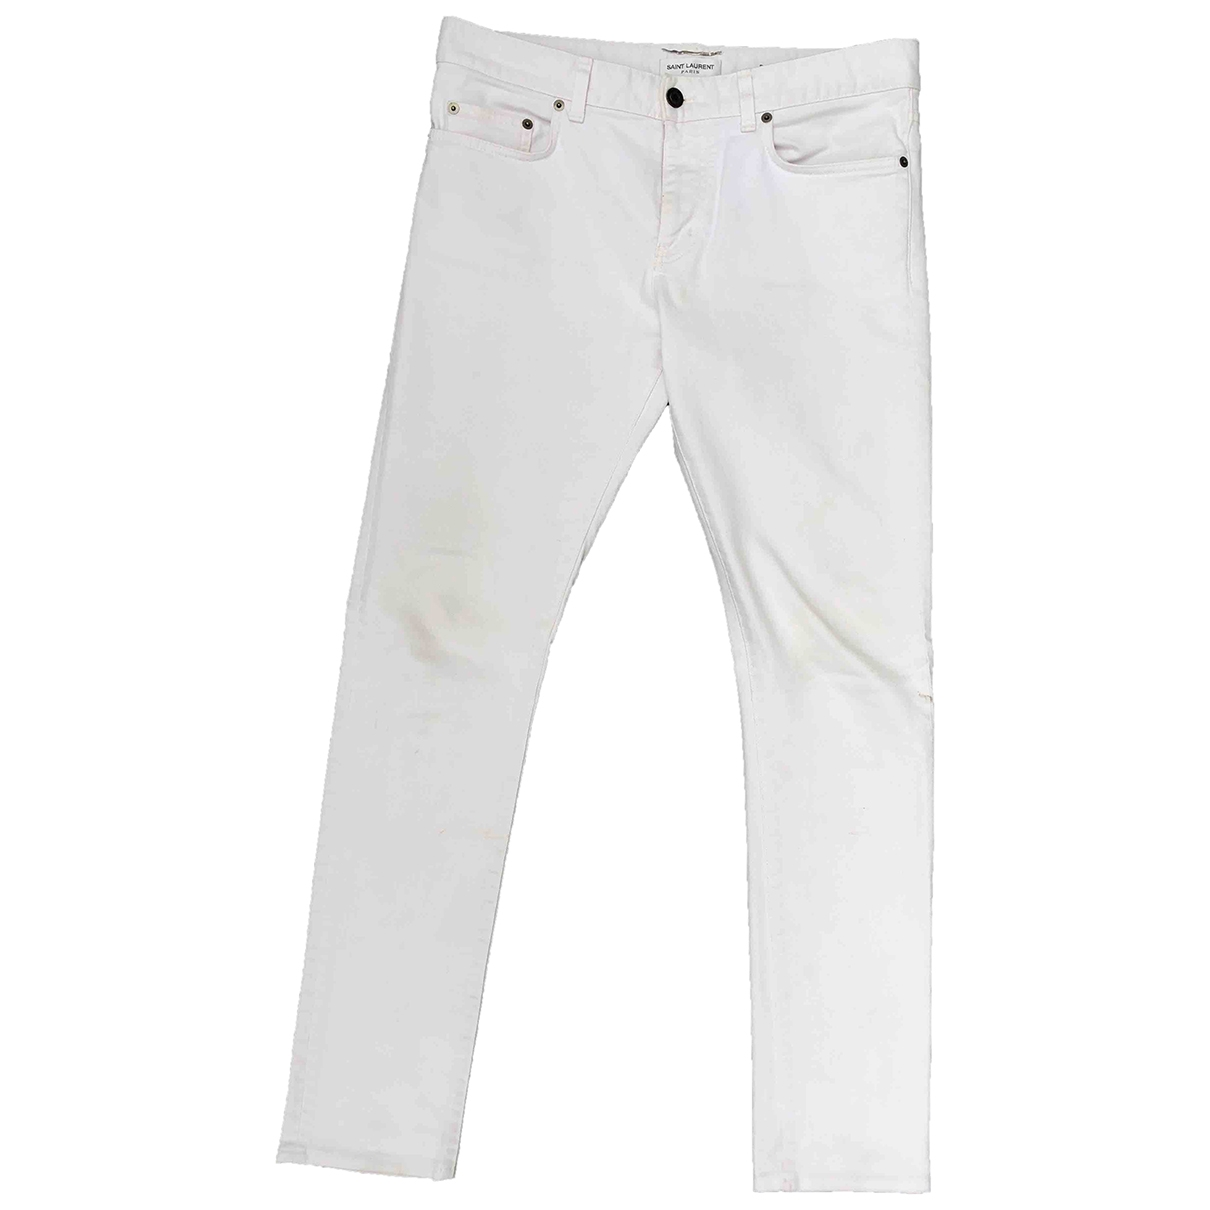 Saint Laurent \N White Cotton - elasthane Jeans for Men 32 US